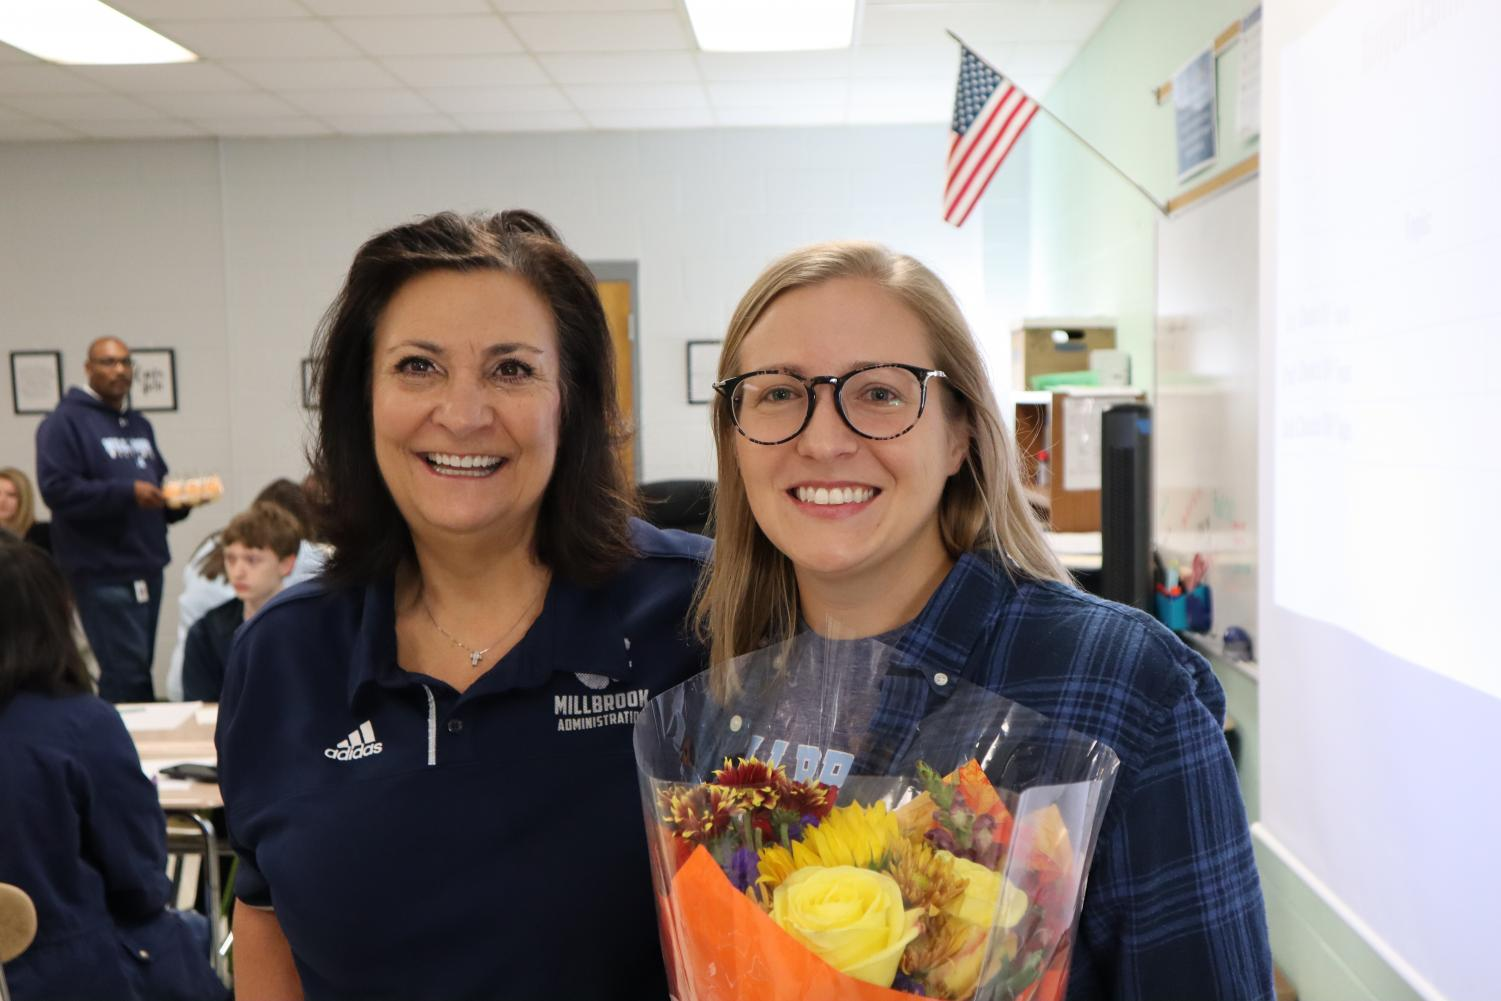 Posing with Principal Dana King, 2019 Teacher of the Year Ms. Fritz is evidently beaming with pride! She has invested much of her time and energy into Millbrook and has now been recognized for her involvement, much to the amusement of students Will Mitchell, Avery Glenn, and countless others!